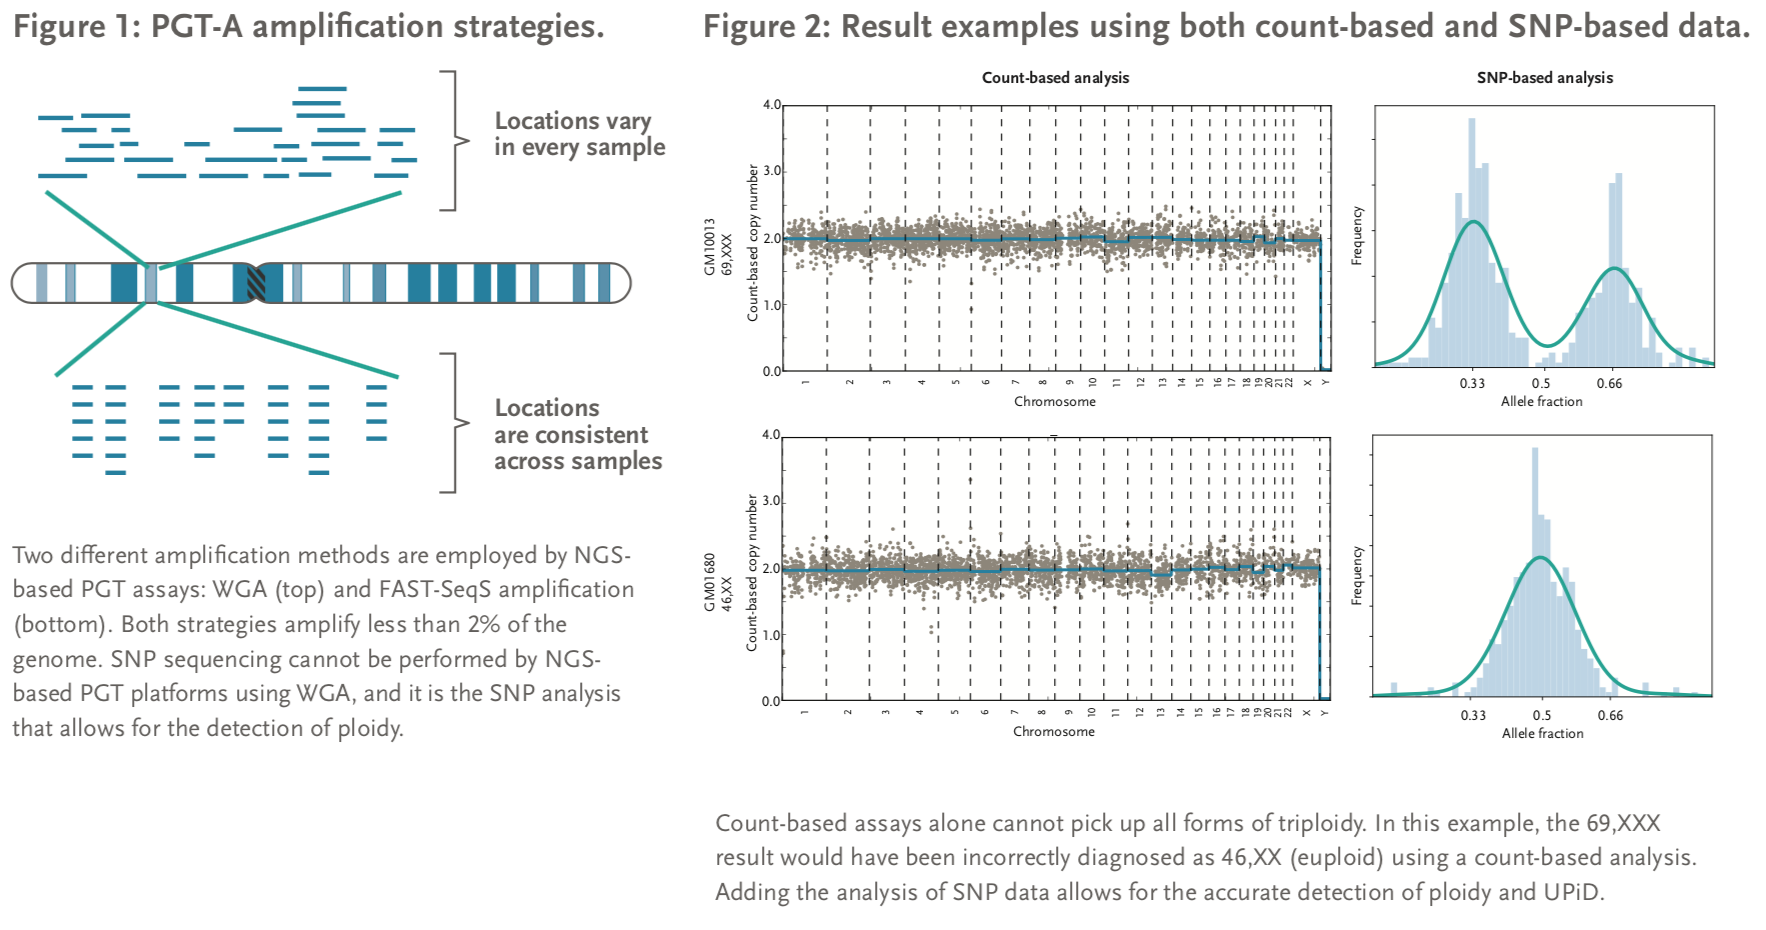 Figure 1: PGT-A amplification strategies and figure 2: Result examples using both count-based and SNP-based data